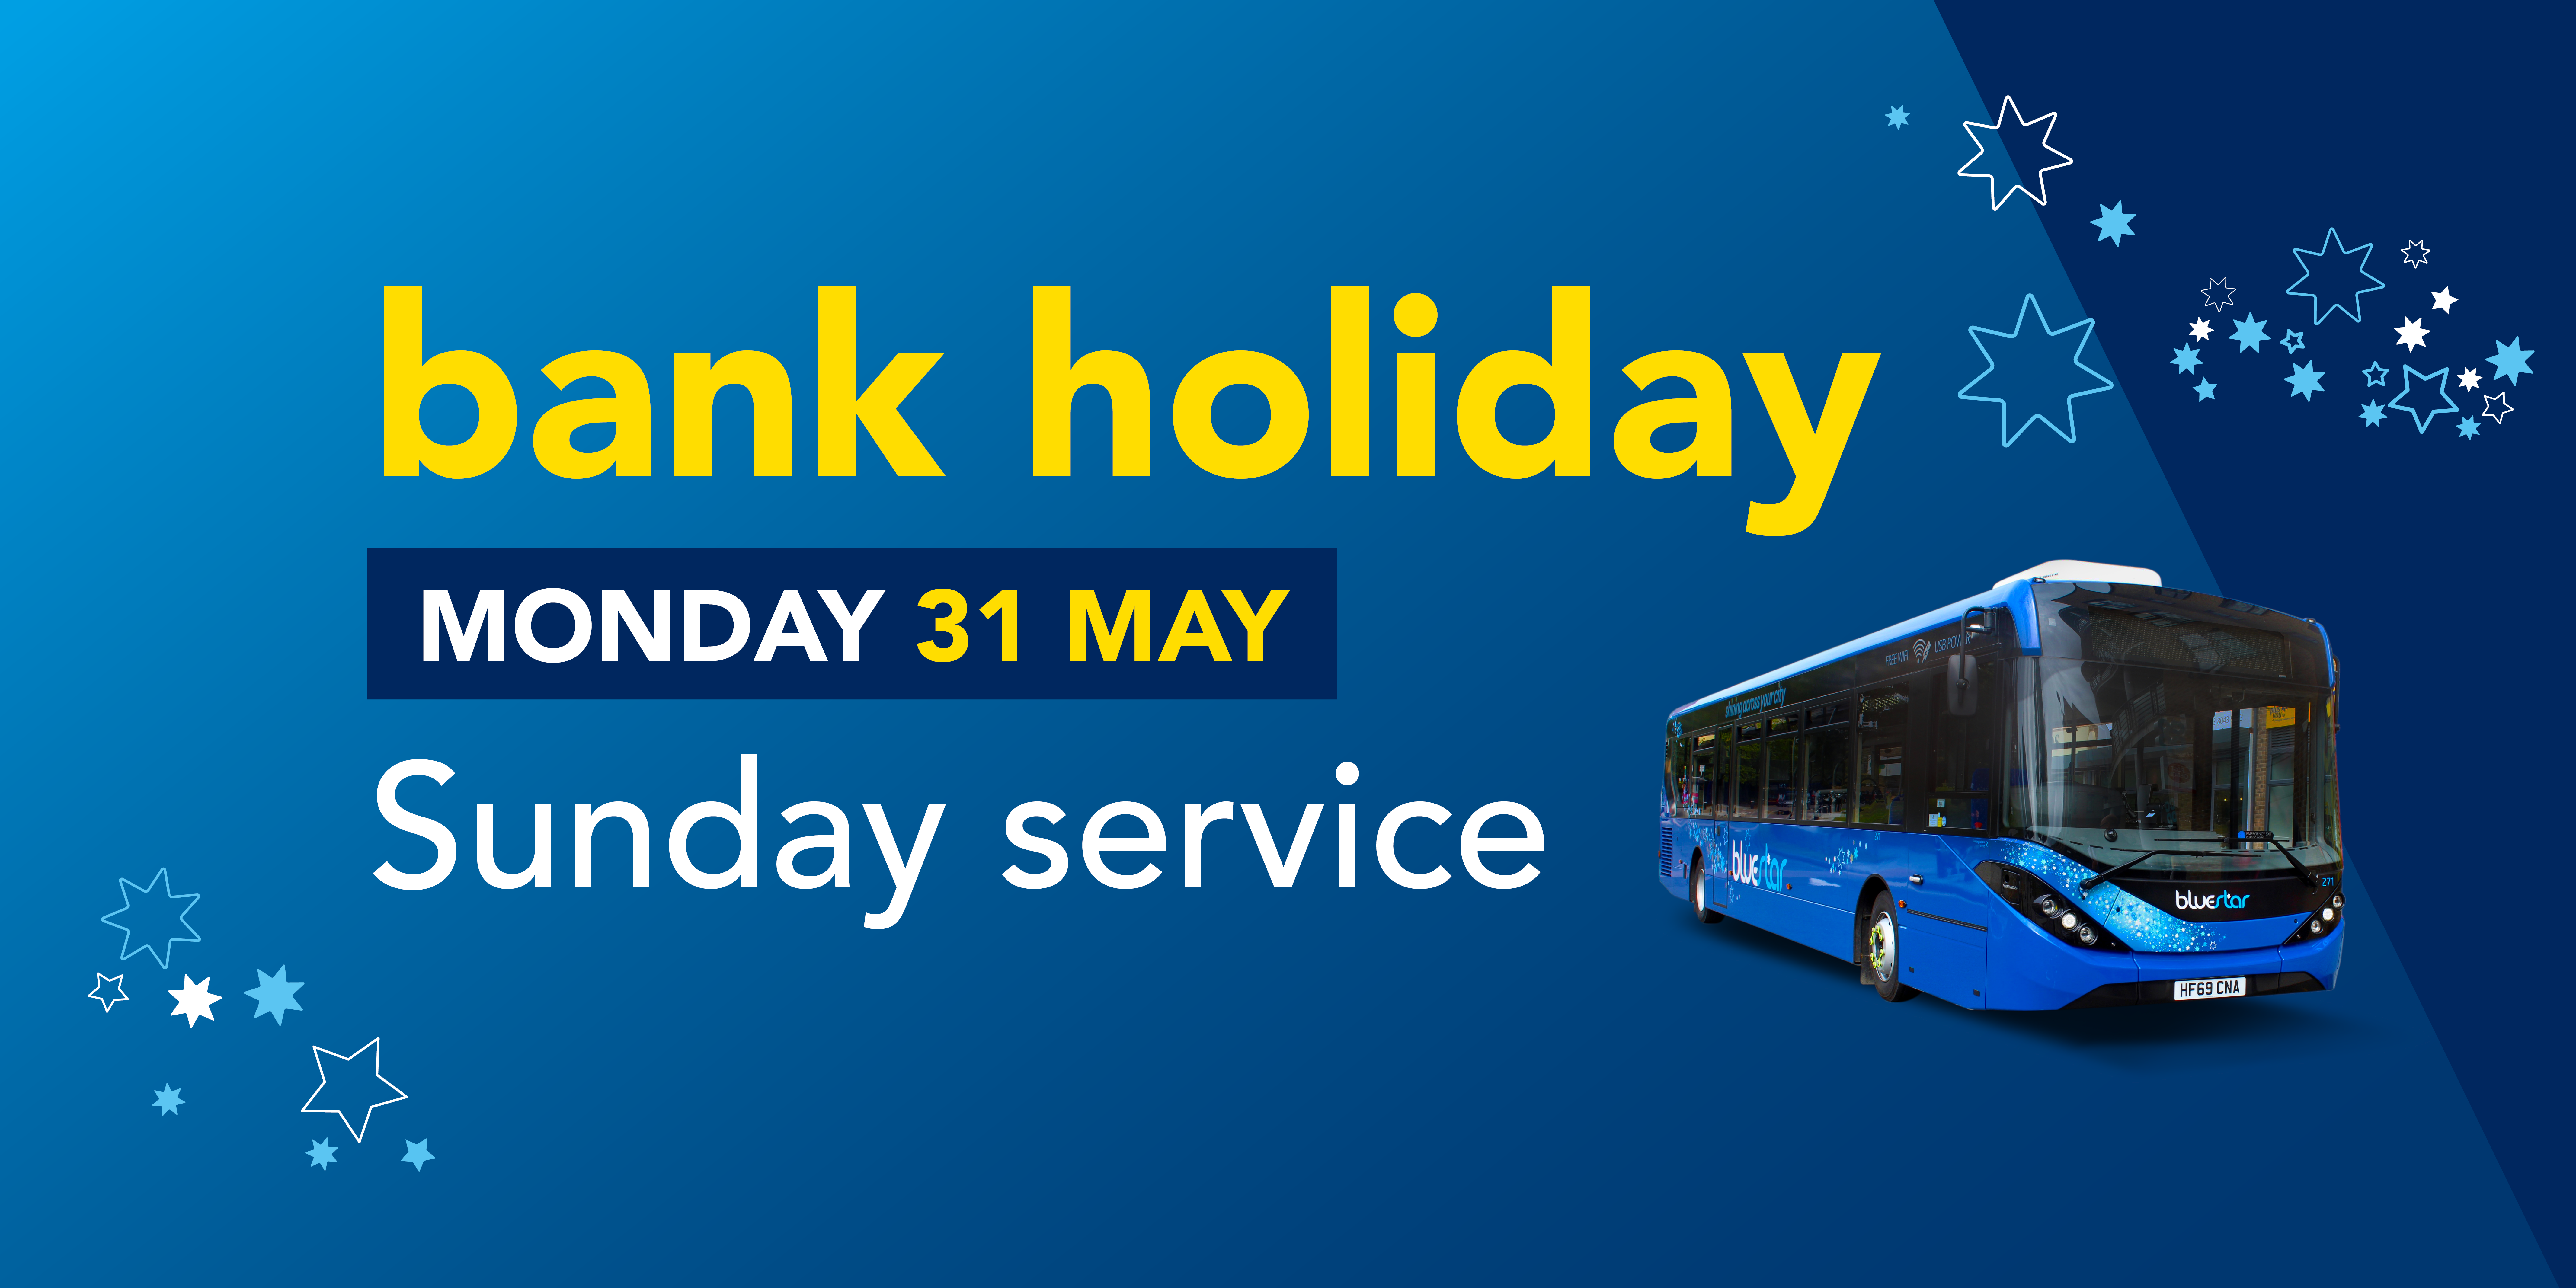 An image of a bus with information about bank holiday's sunday service